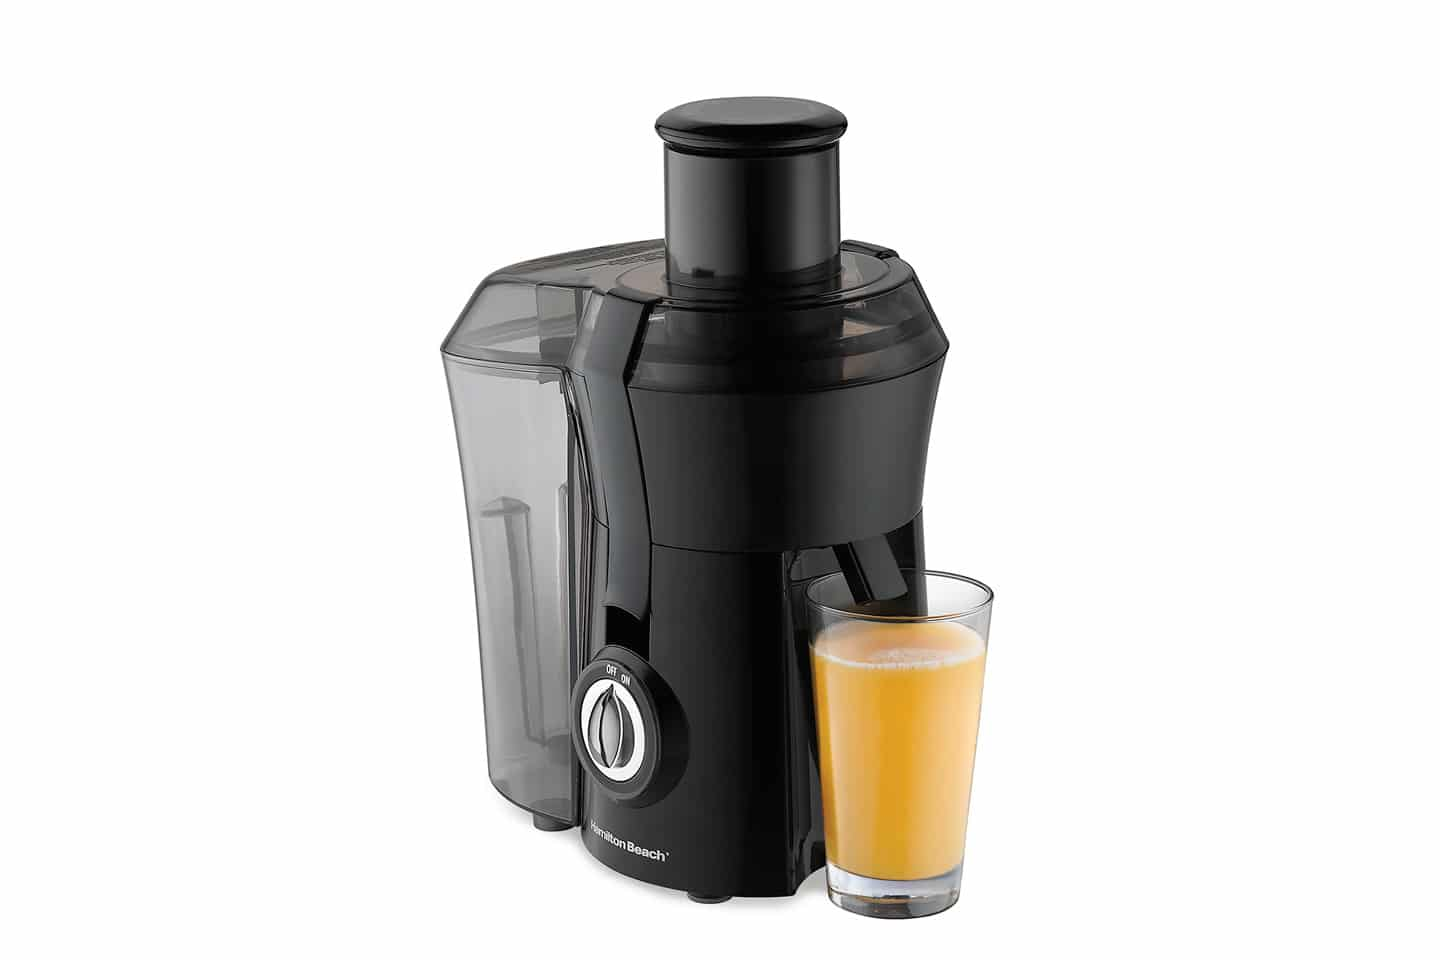 Hamilton Beach Big Mouth Juice Extractor Review | Juicing Journal